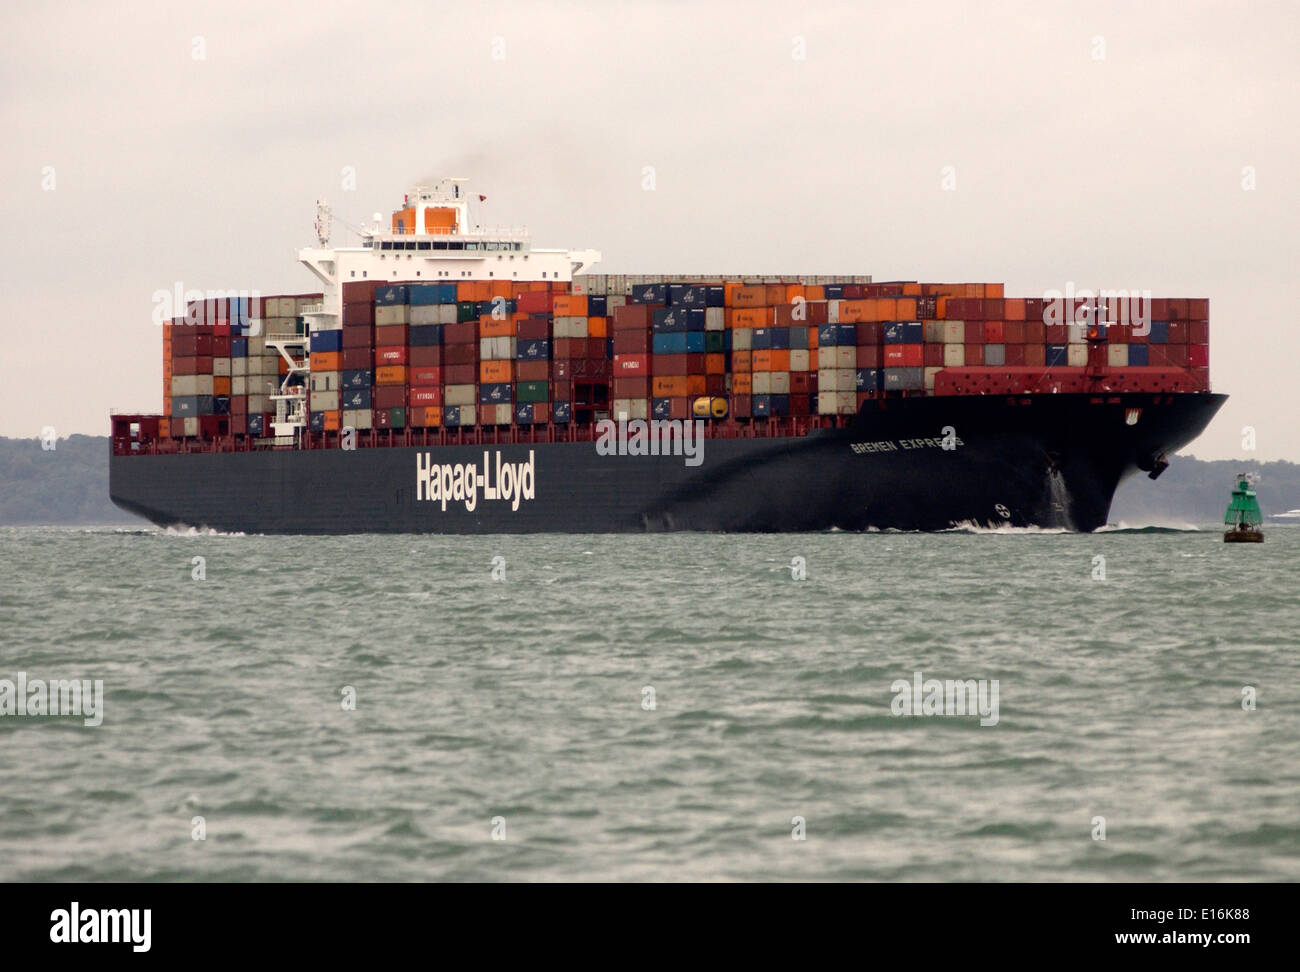 SOUTHAMPTON,ENGLAND. - Imports arrive - Containers stacked on the deck of the Hapag Lloyd freighter Bremen Express. Stock Photo